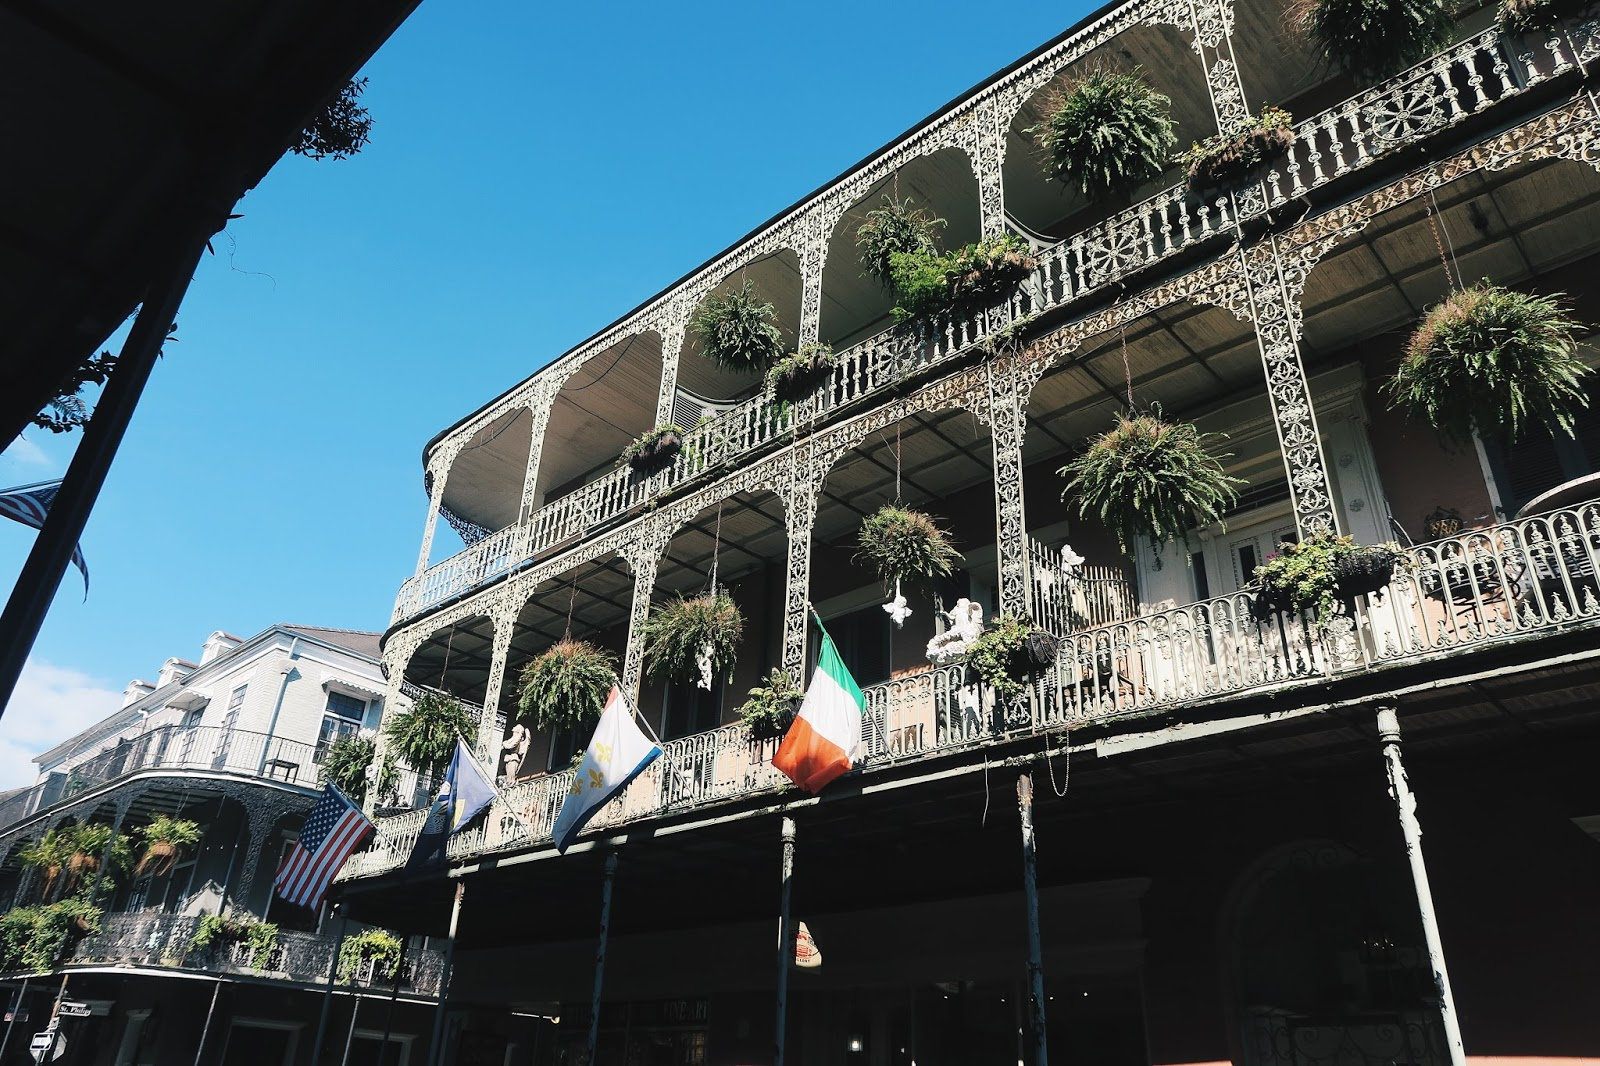 FRENCH QUATER NEW ORLEANS